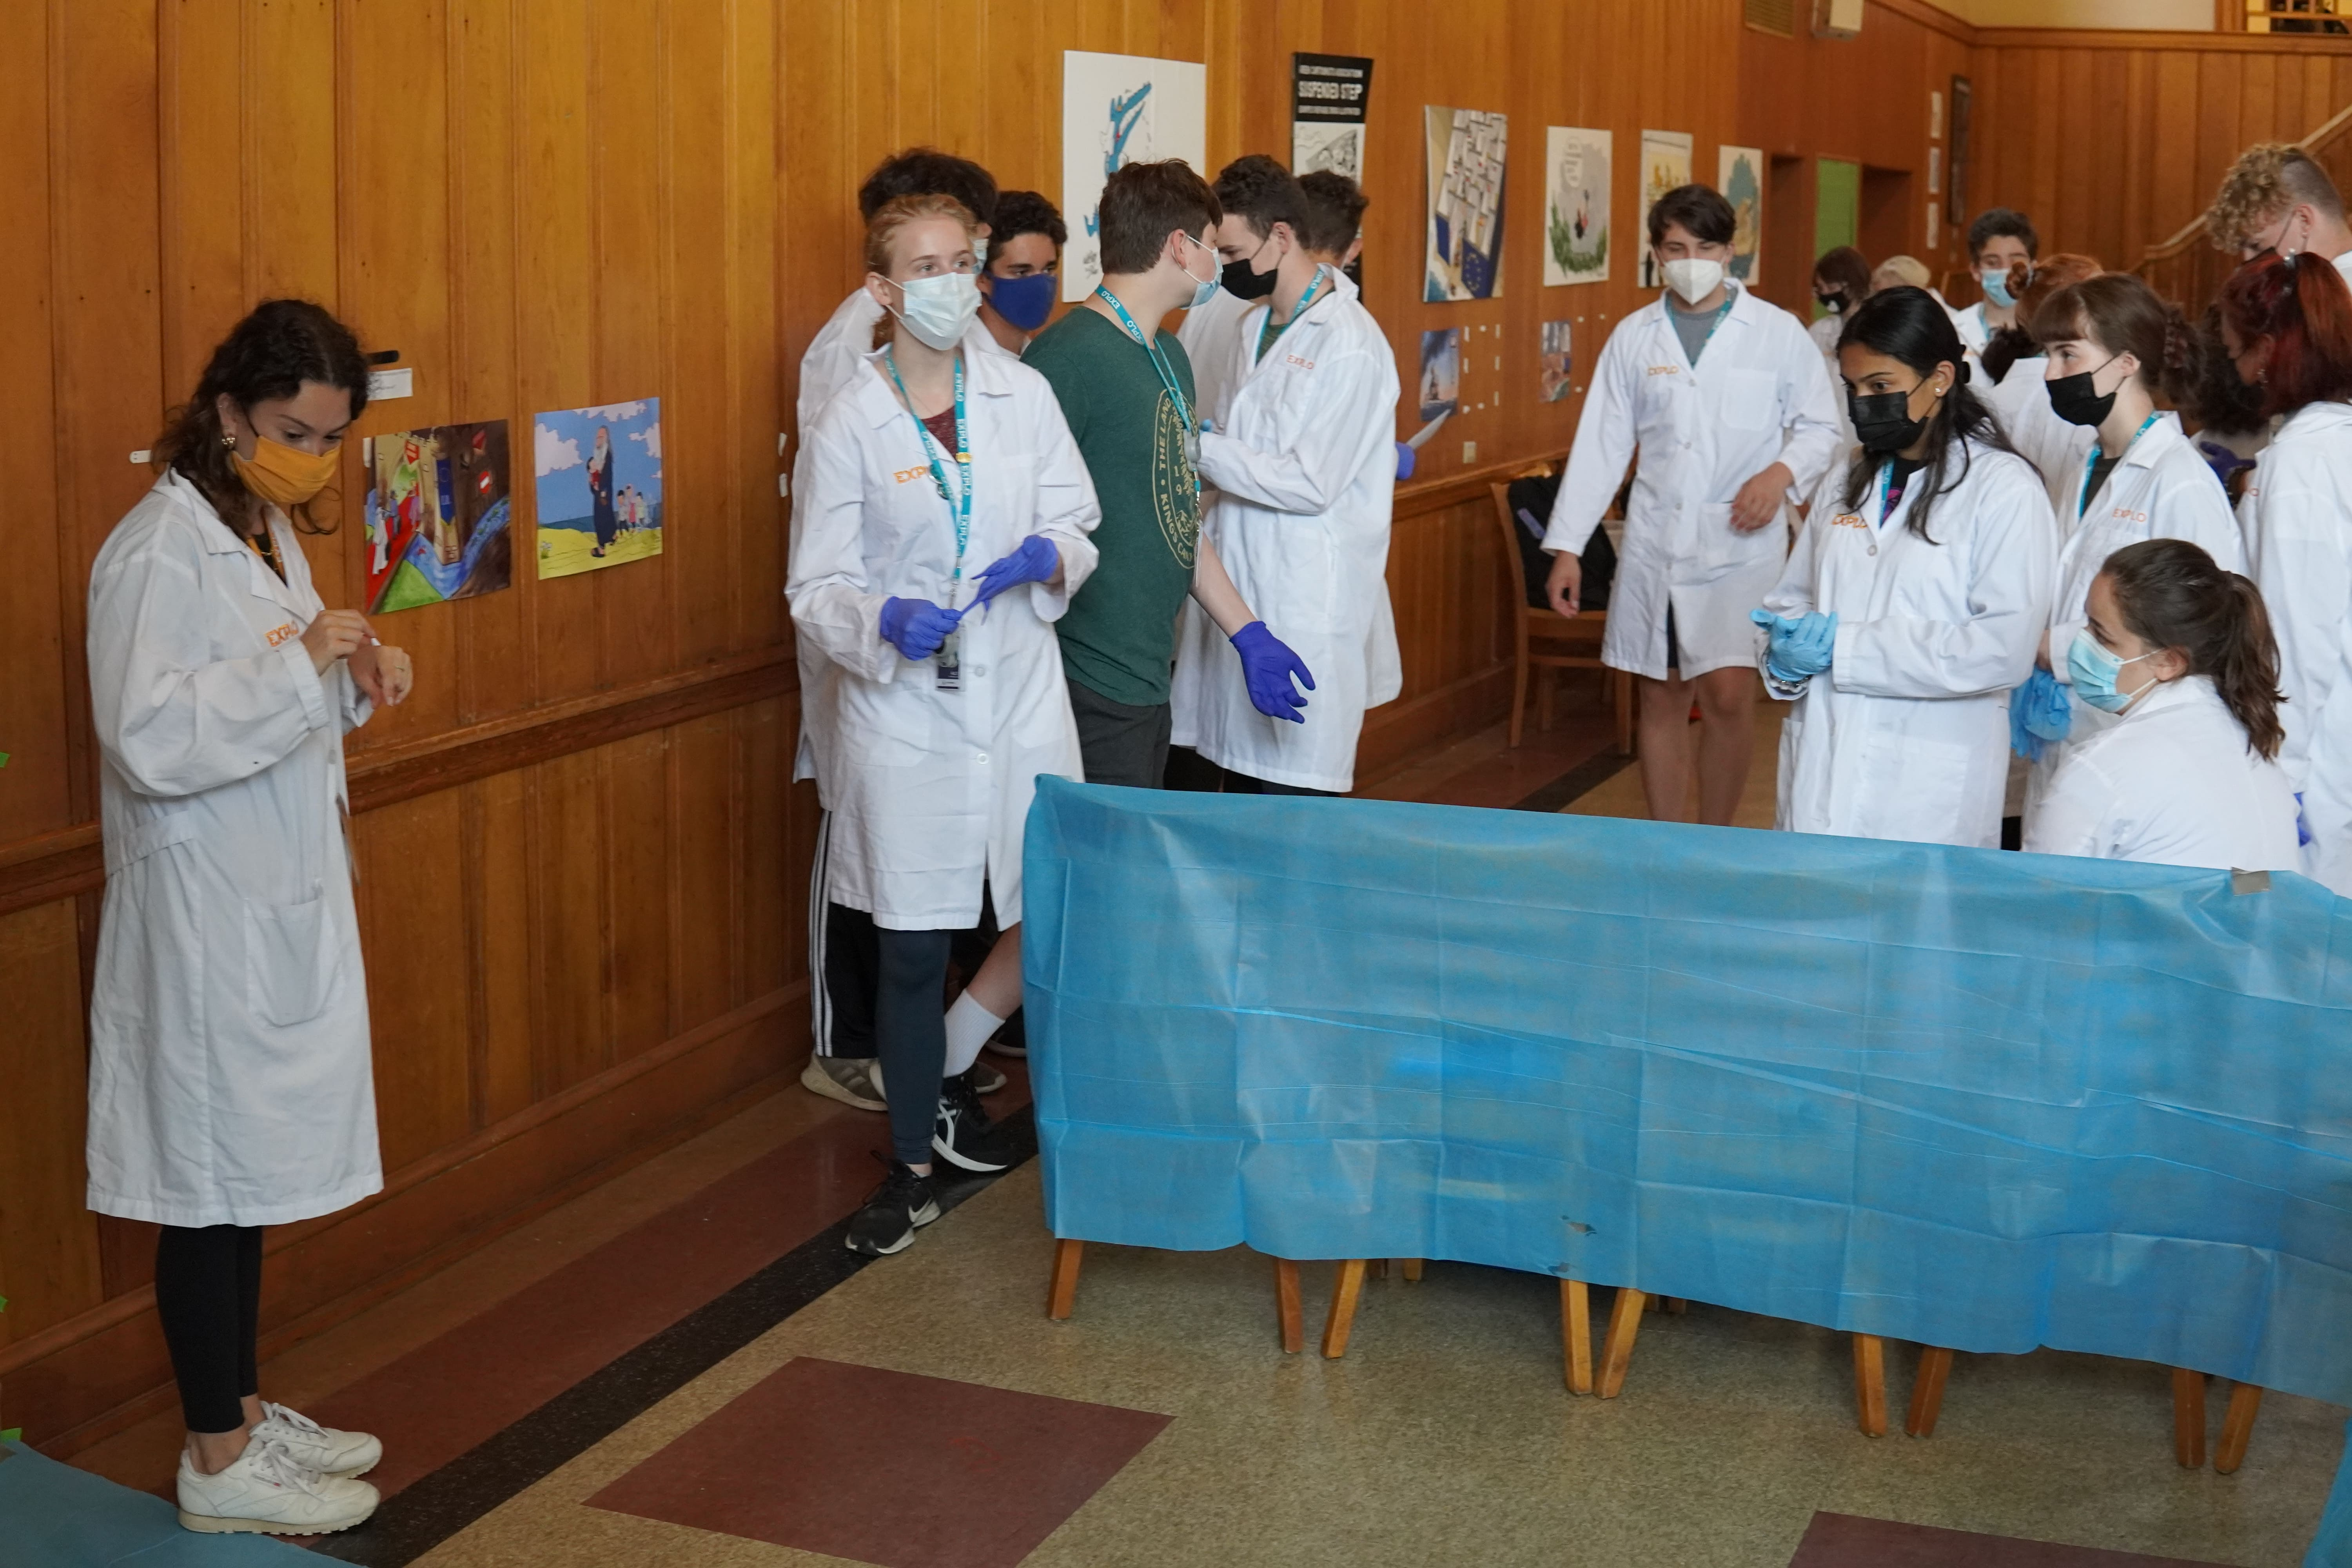 Teaching Fellow Laure prepares a space for students to practice their blood splattering and identification